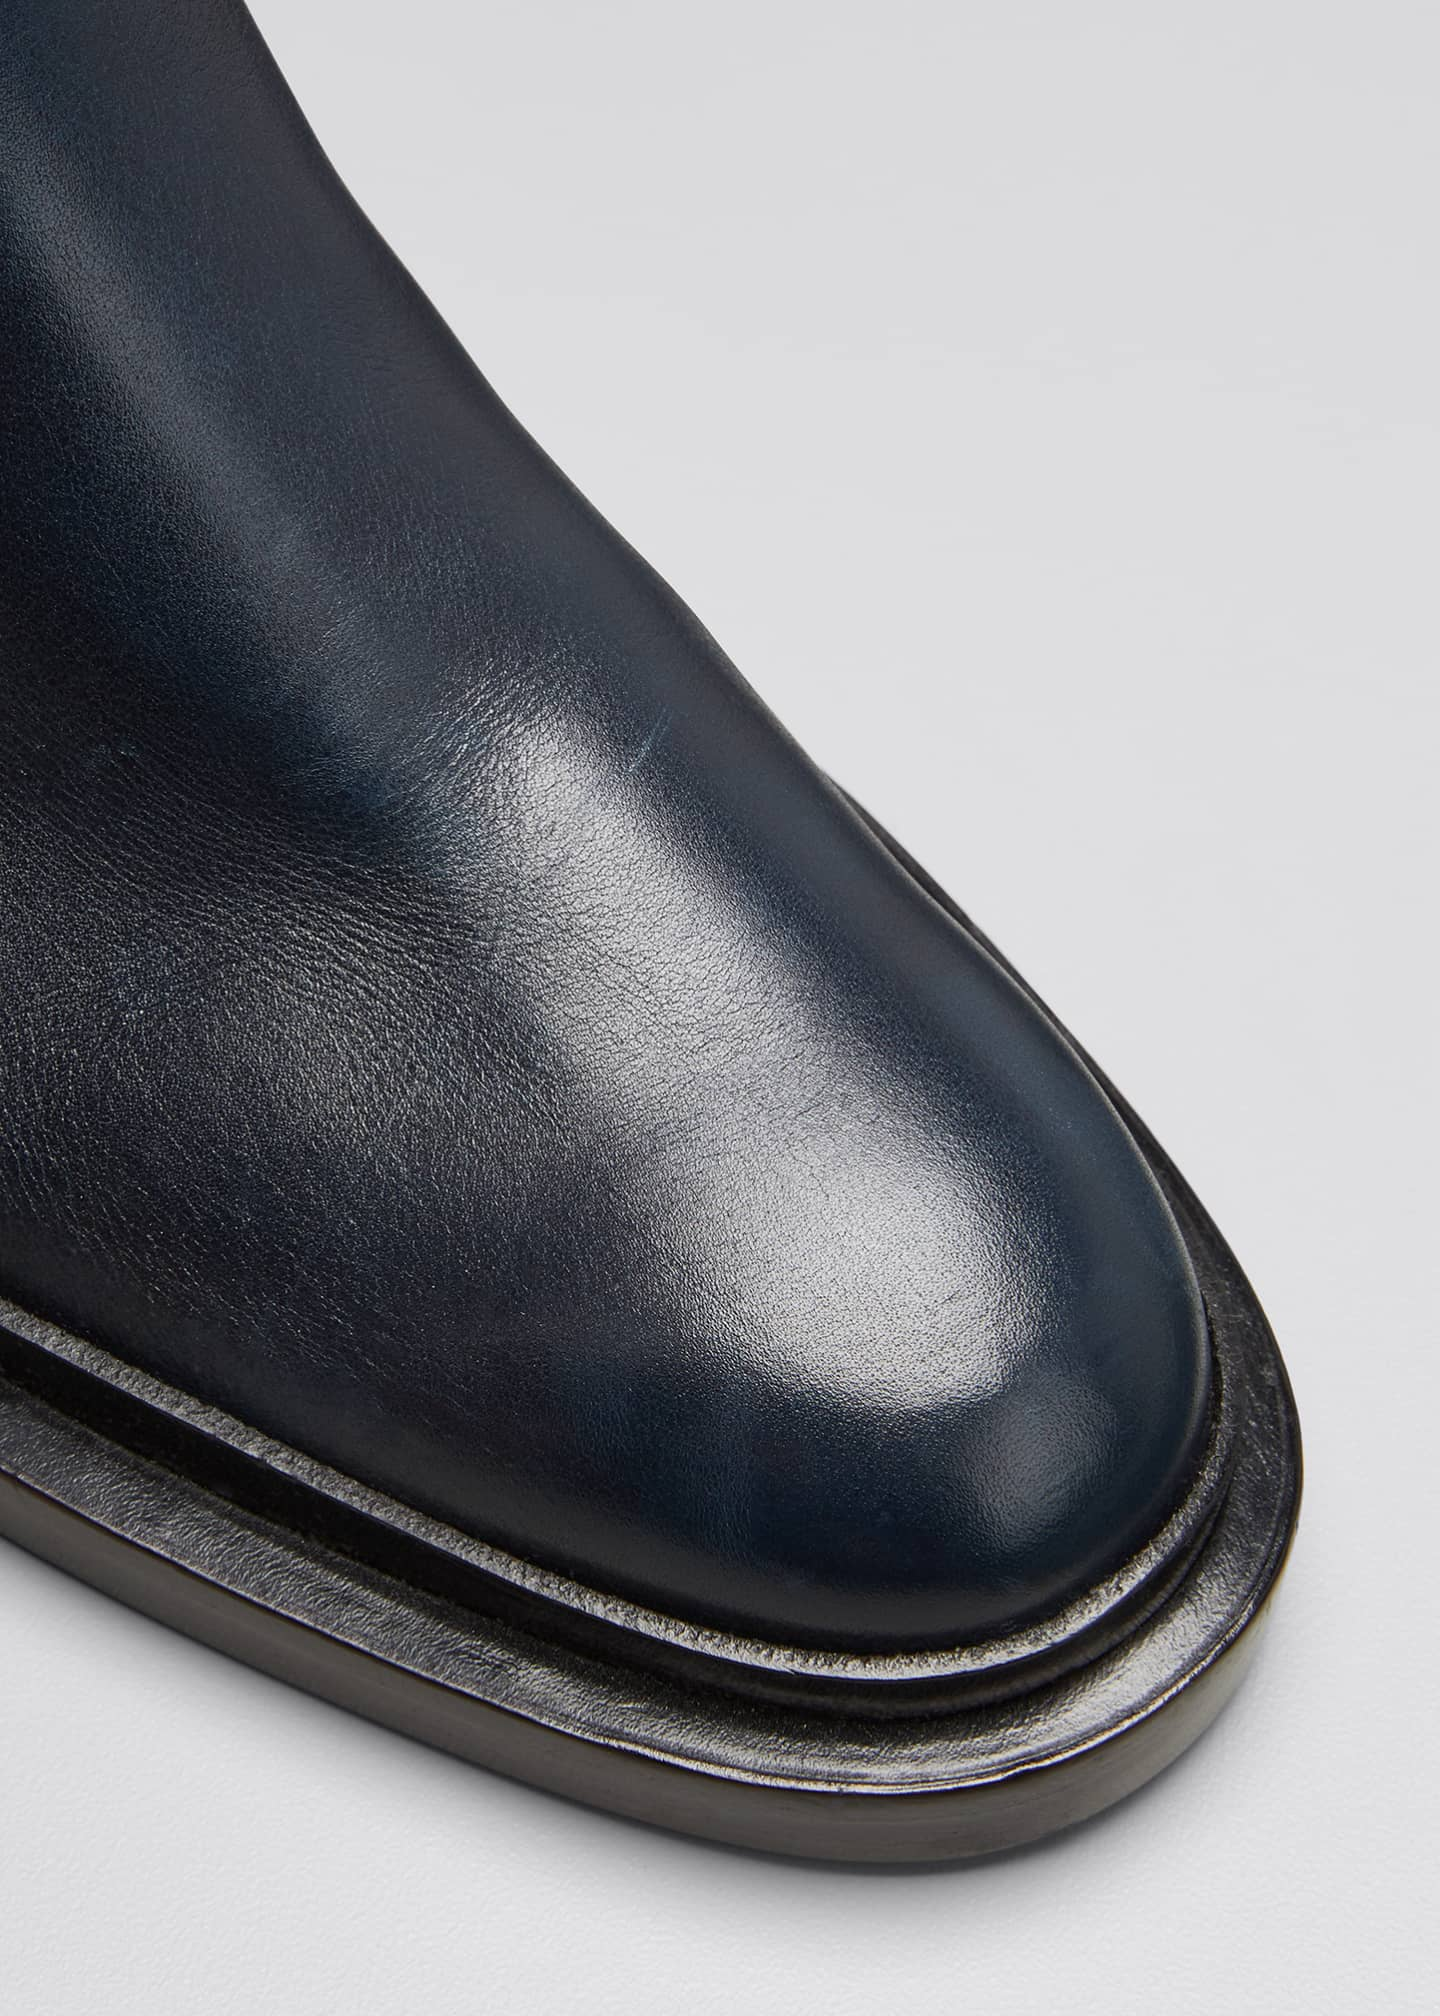 Image 3 of 3: Asymmetrical Leather Riding Boots